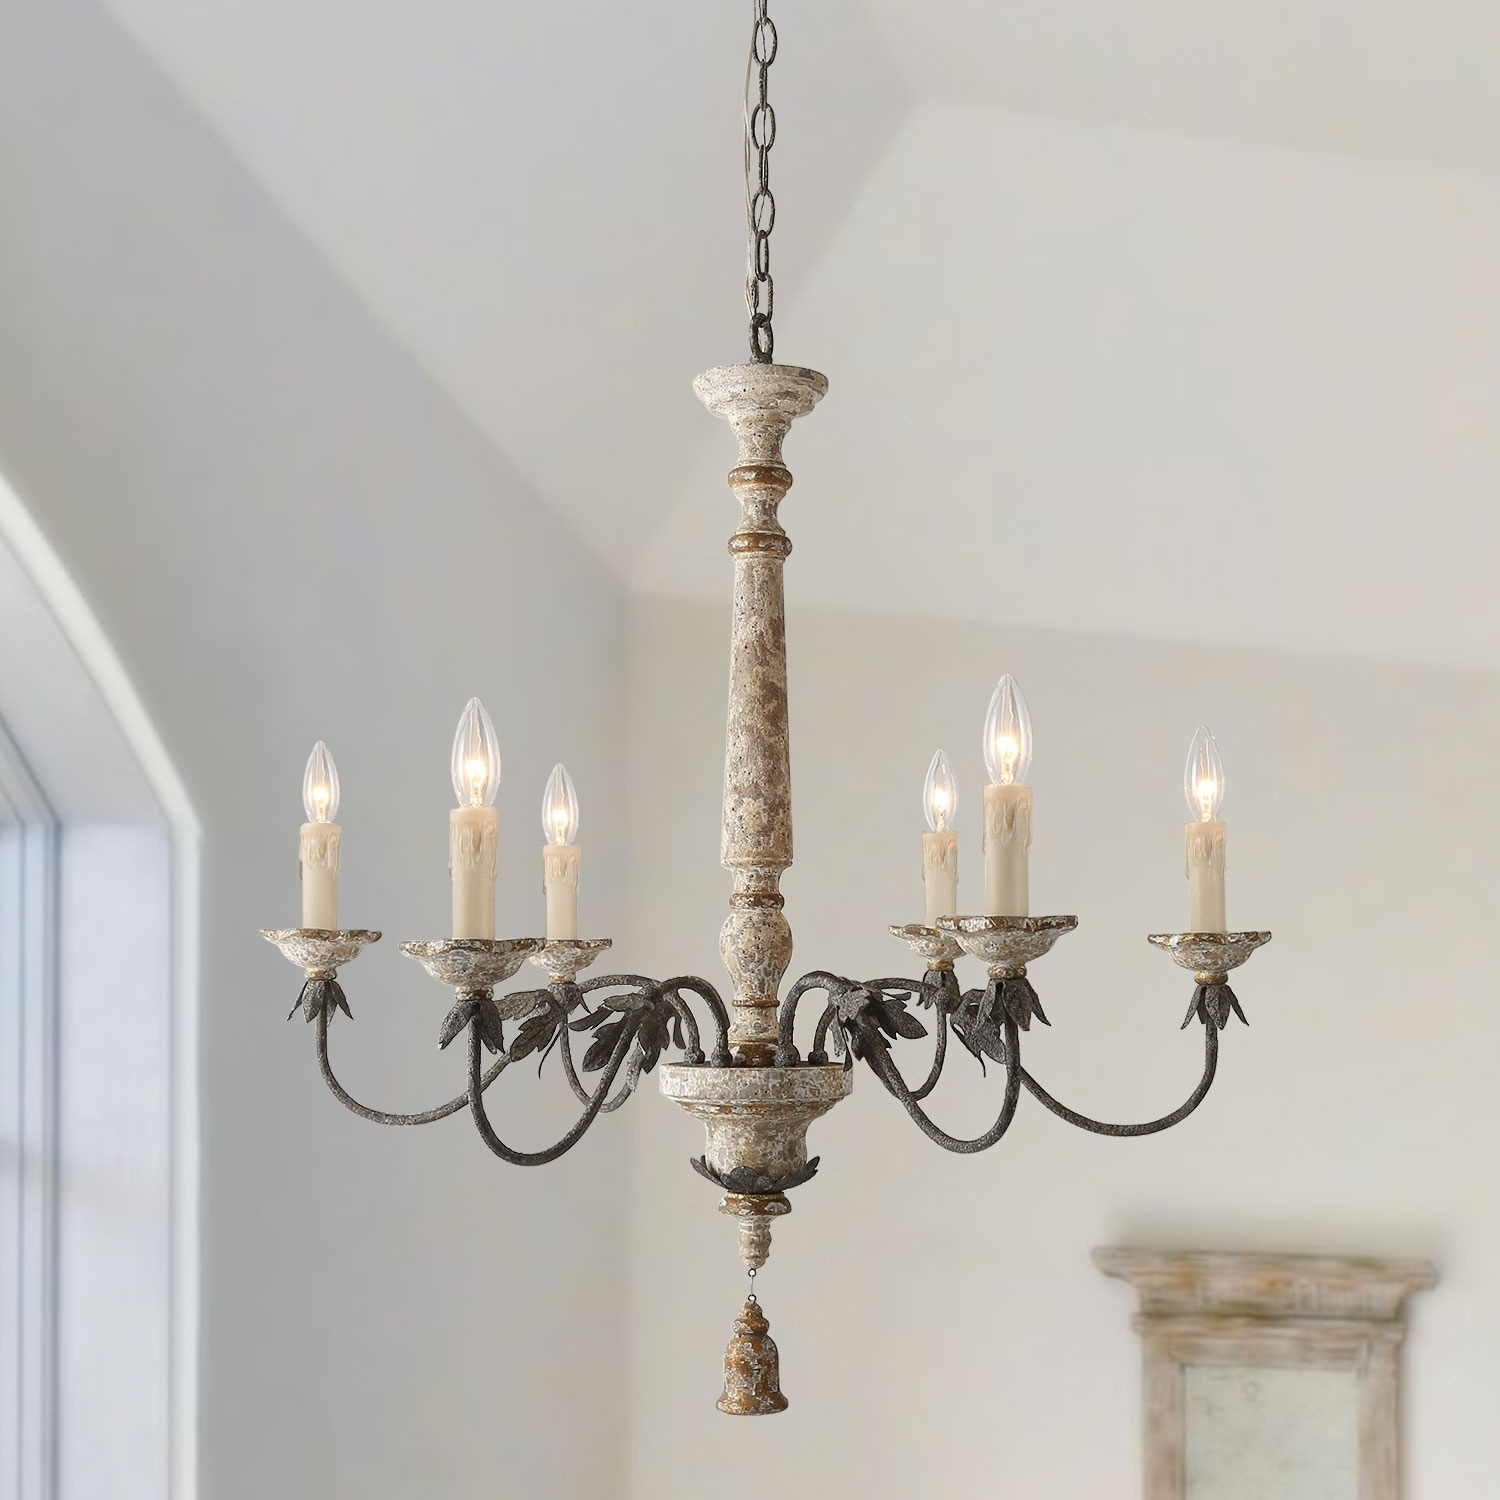 French Country Chandelier Retro White 6 Lights Pendant Lighting N A